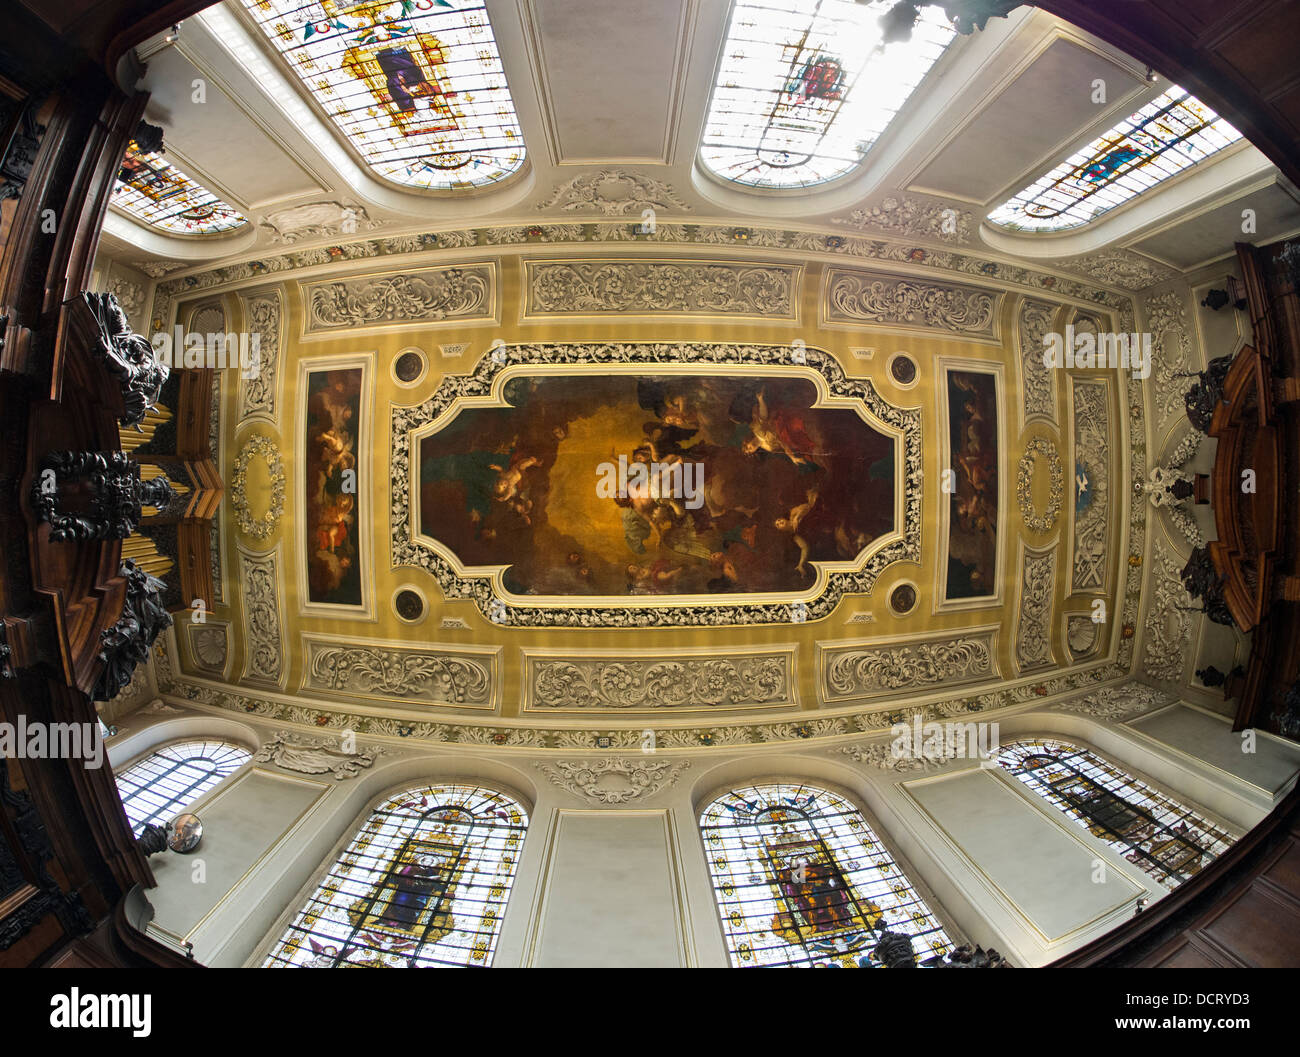 The Chapel of Trinity College, Oxford - fisheye view 2 - Stock Image